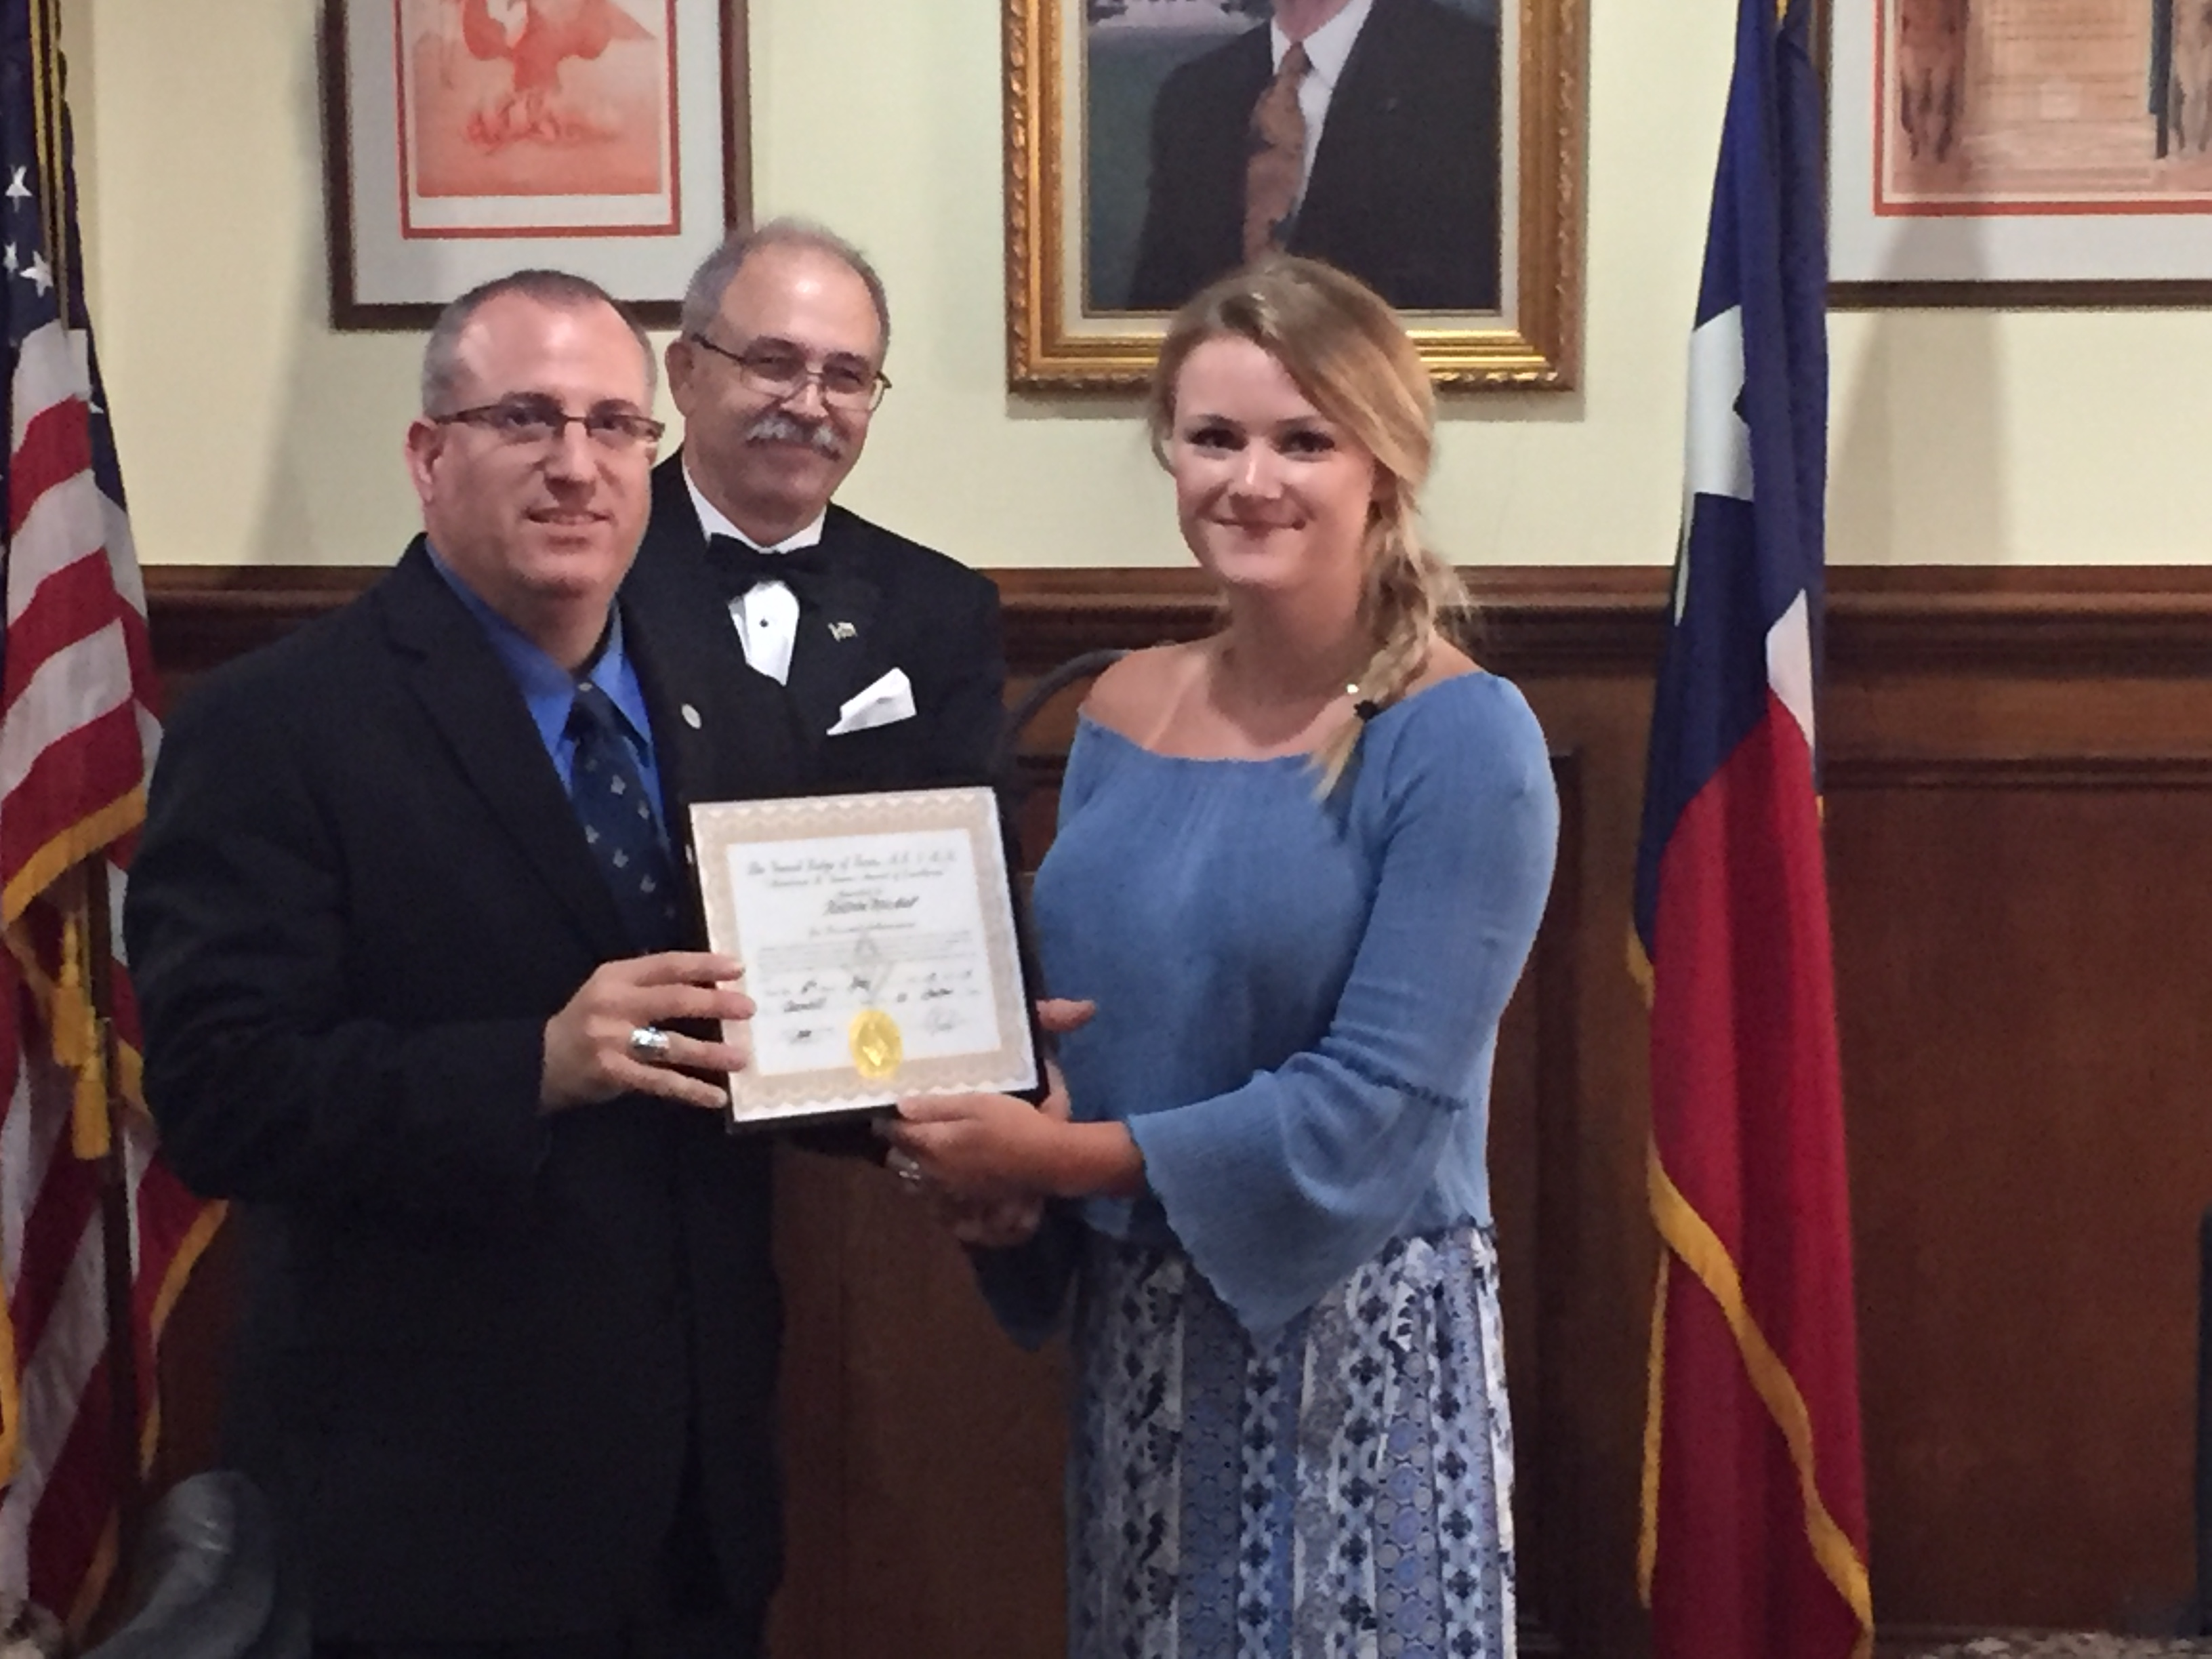 Tannehill Masonic Lodge Scholarship